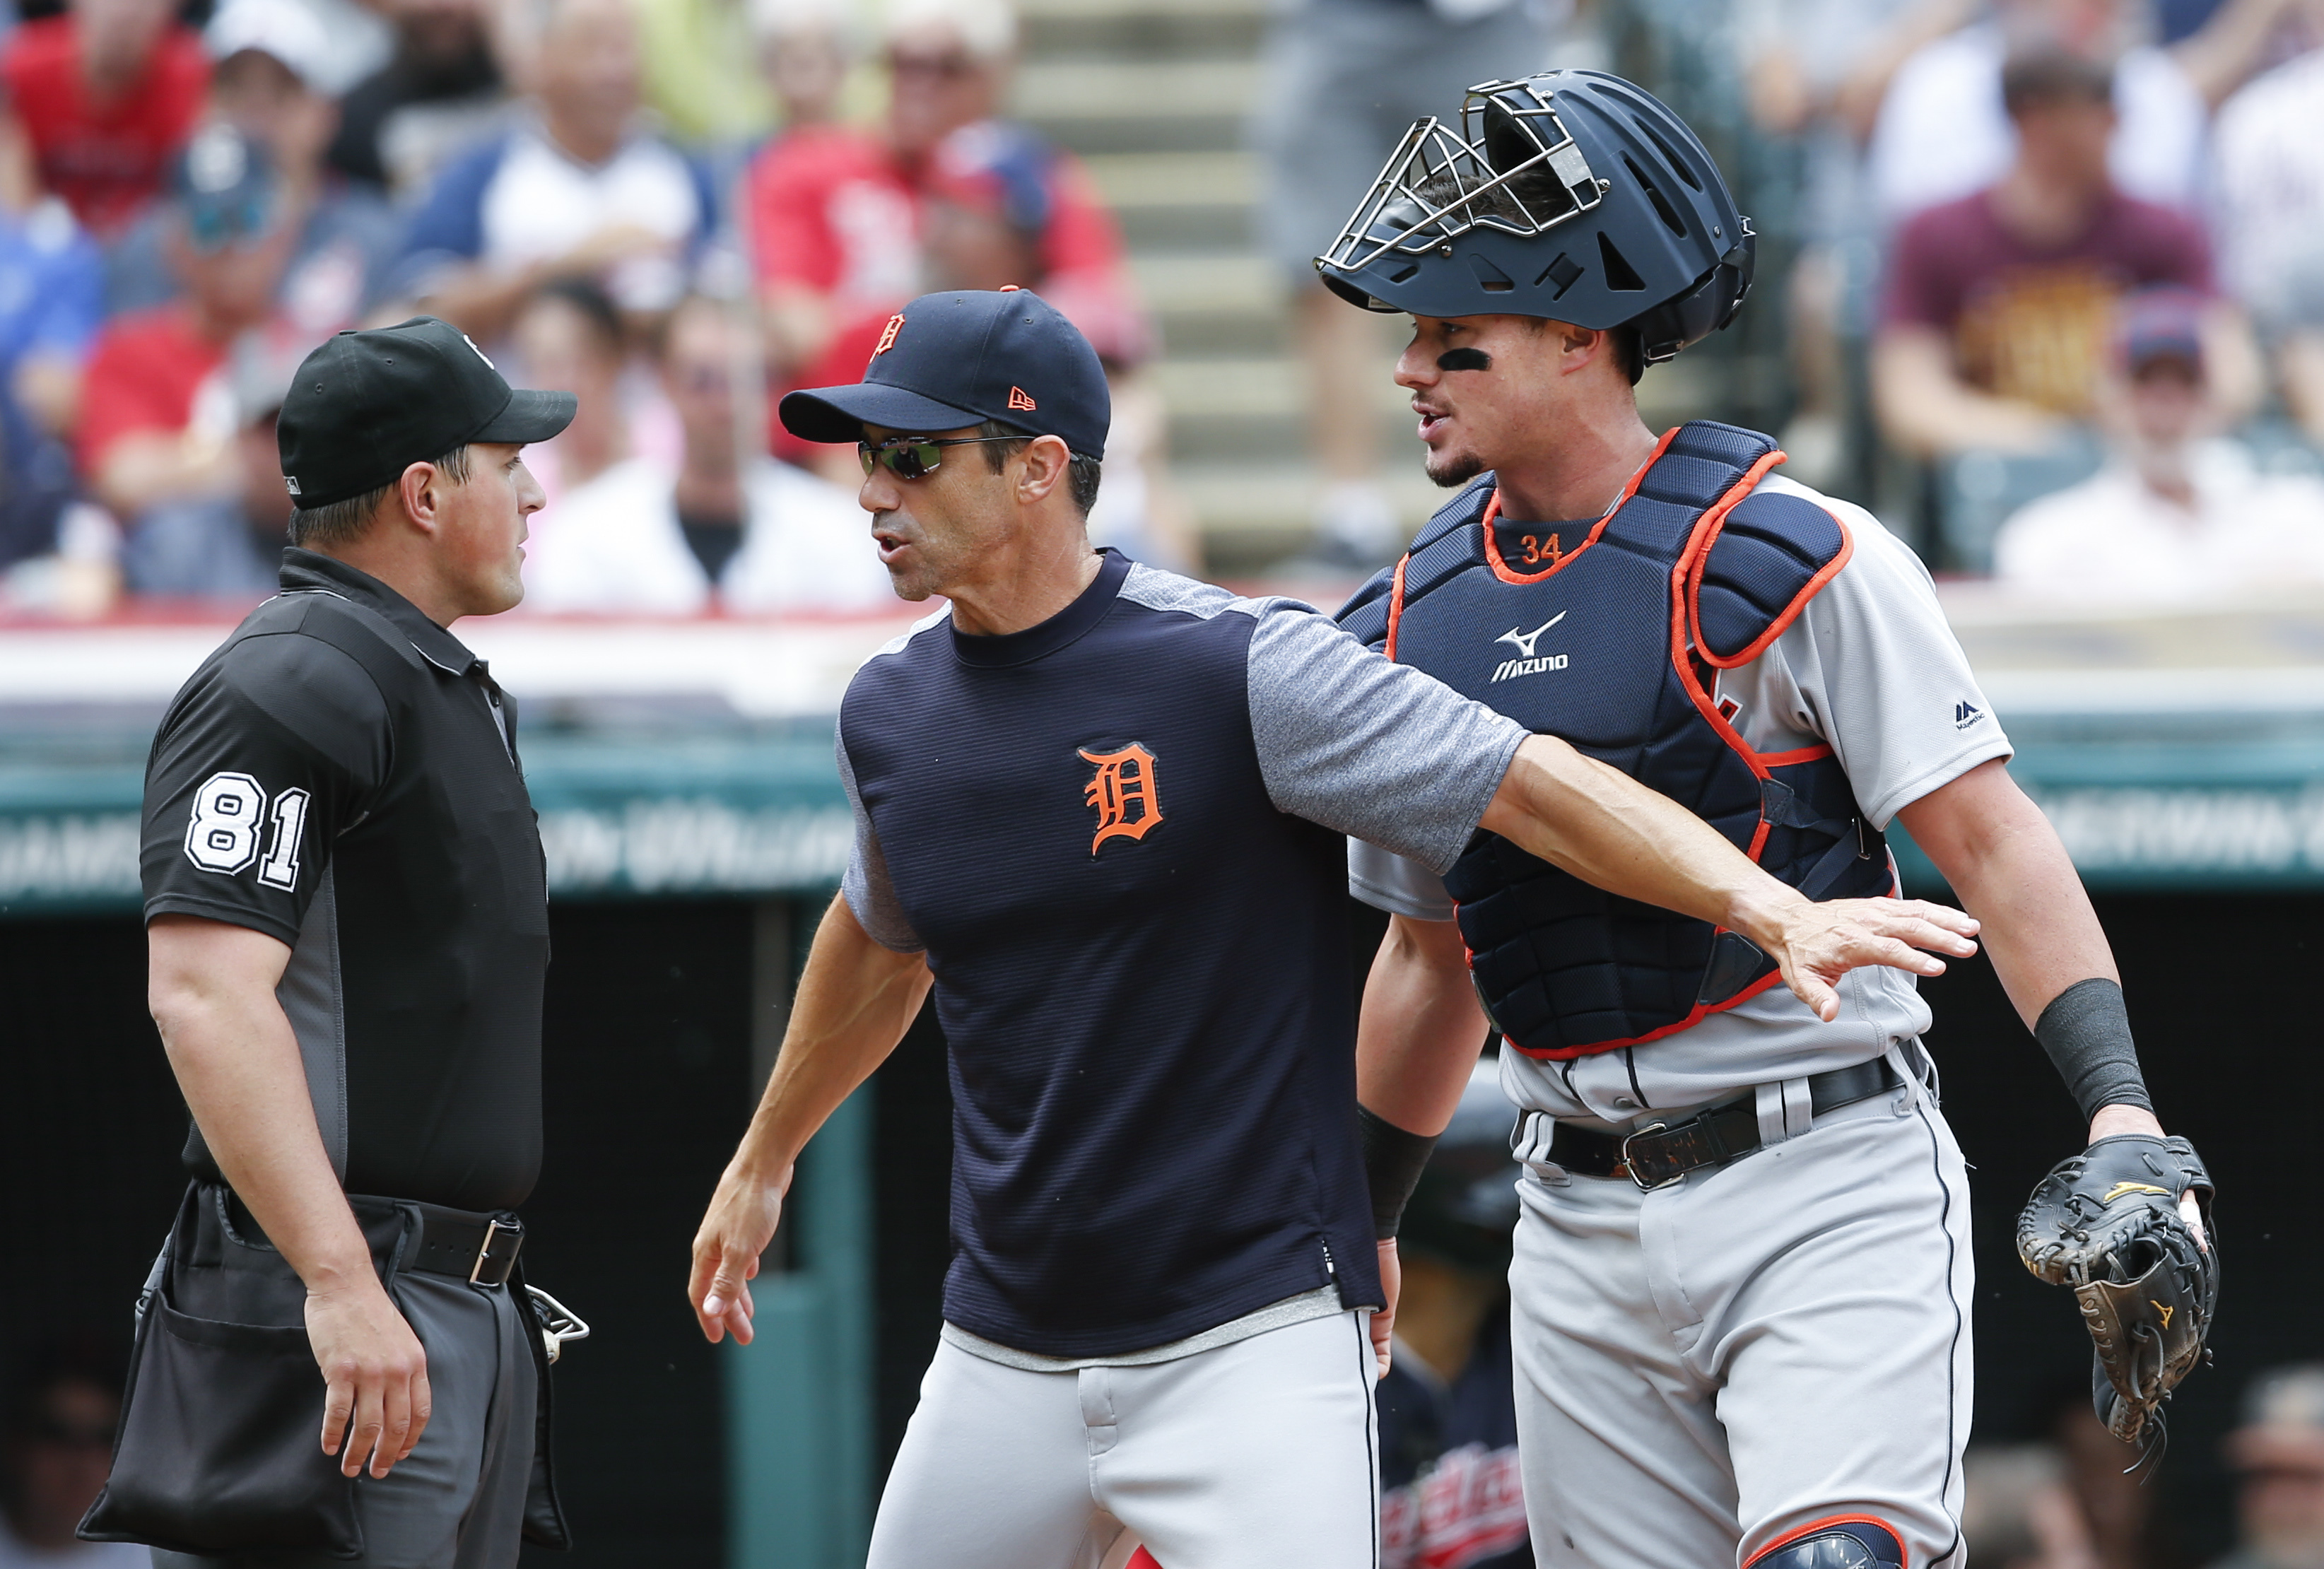 Tigers deny hitting umpire on purpose after Indians broadcast fuels speculation